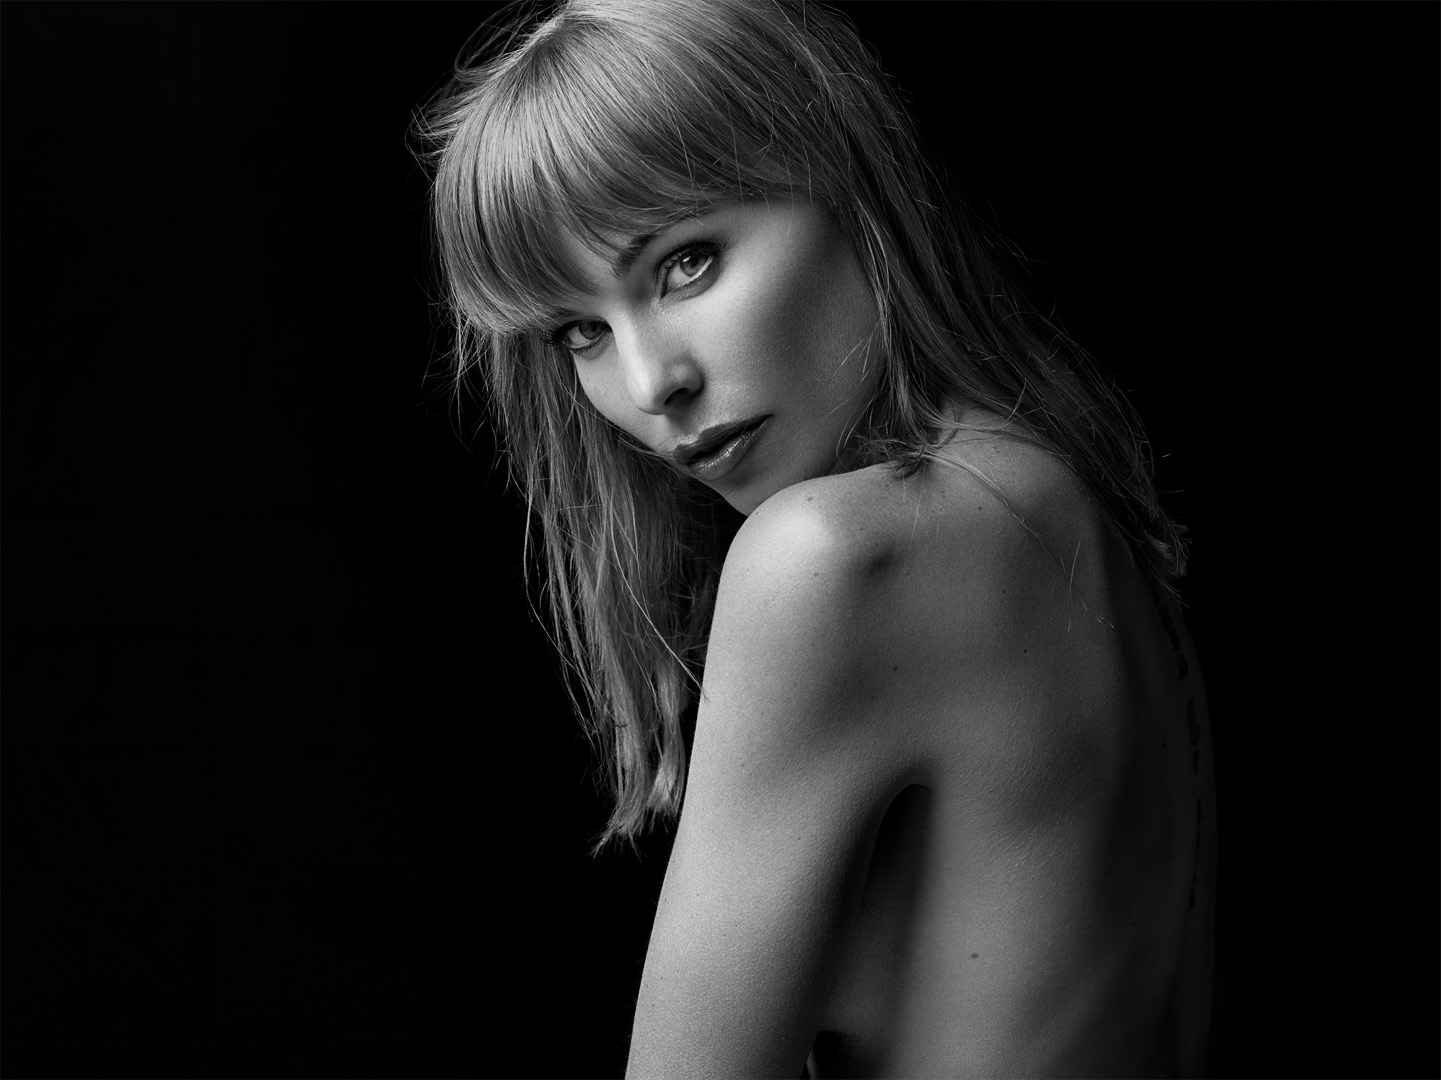 In this black and white image, model Ingvill is posing with her back and left shoulder towards the camera